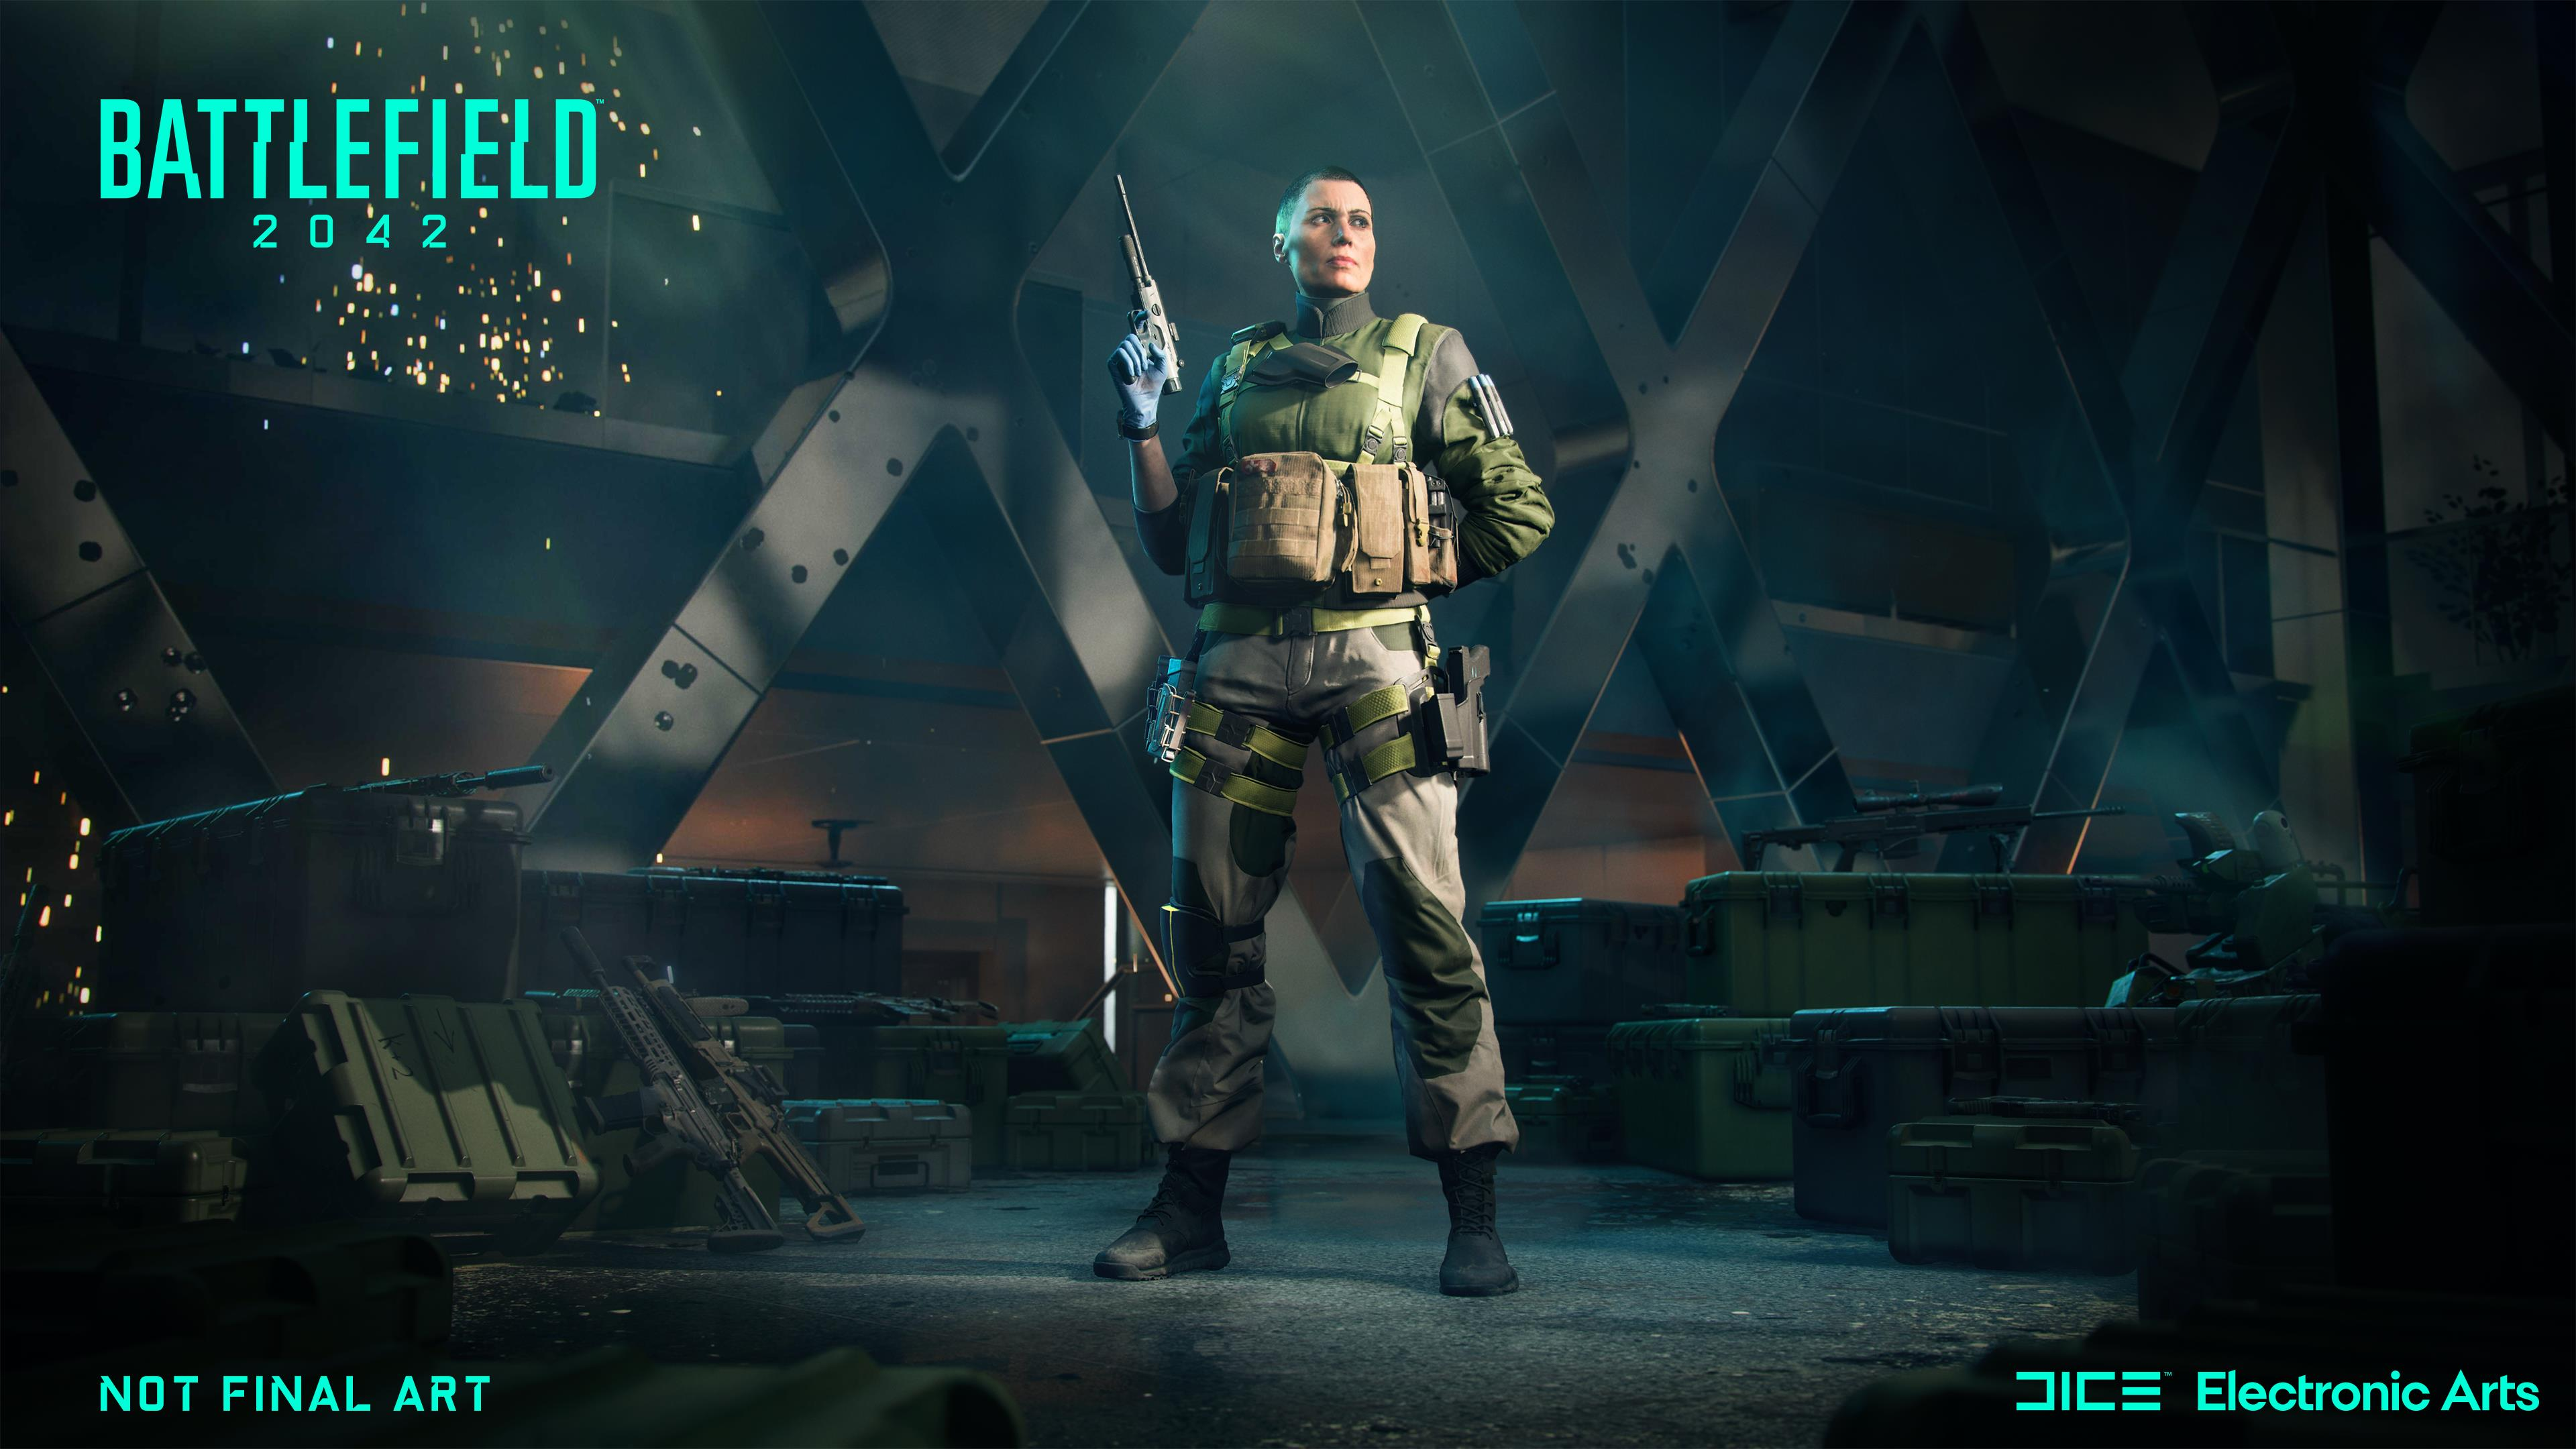 Battlefield 2042 Specialists are Siege-like characters ...